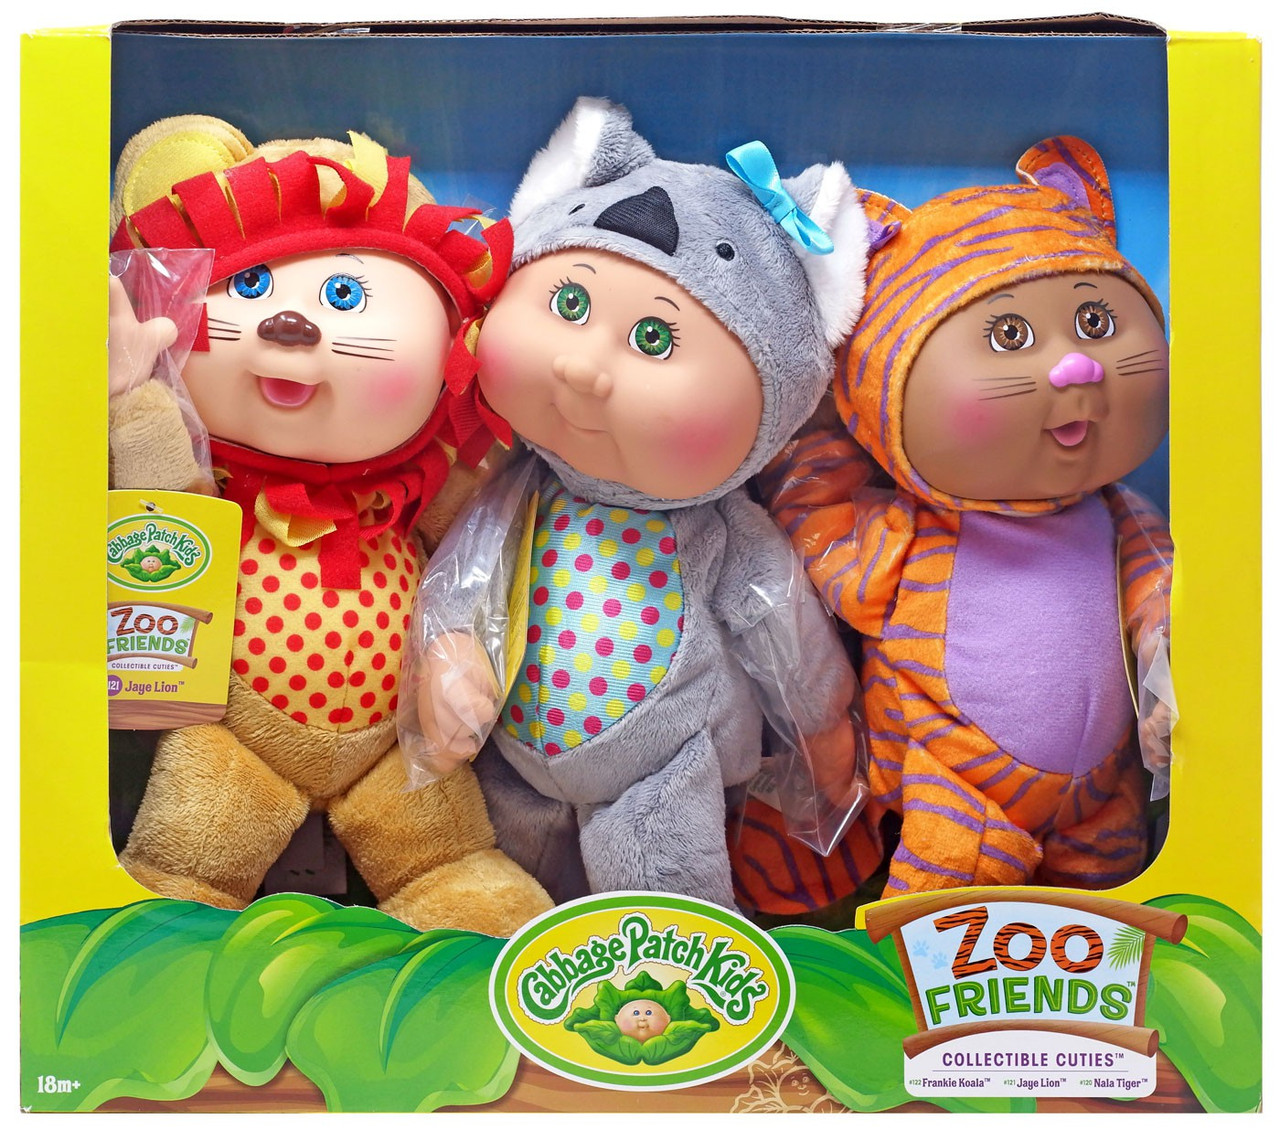 $13.99! Cabbage Patch Kids Woodland Friends Collectible Cuties 3 pack Cuties